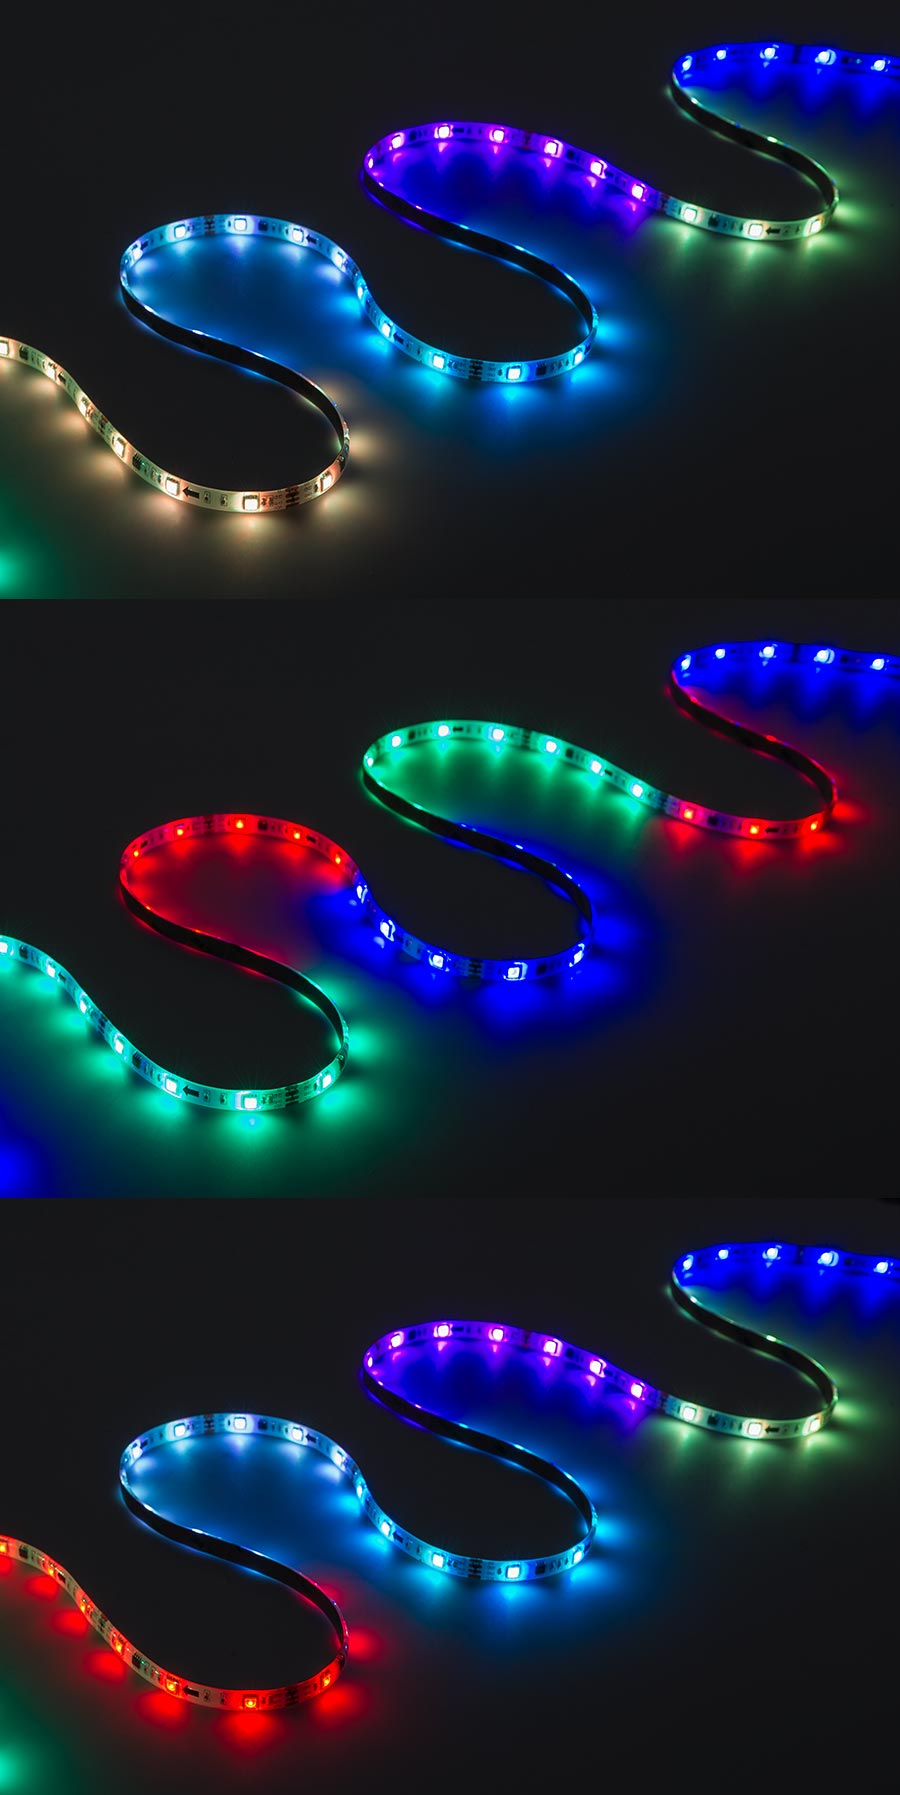 medium resolution of waterproof color chasing led light strips with multi color leds 16 40ft 5m outdoor led tape light with 18 smds ft 3 chip rgb smd led 5050 on showing